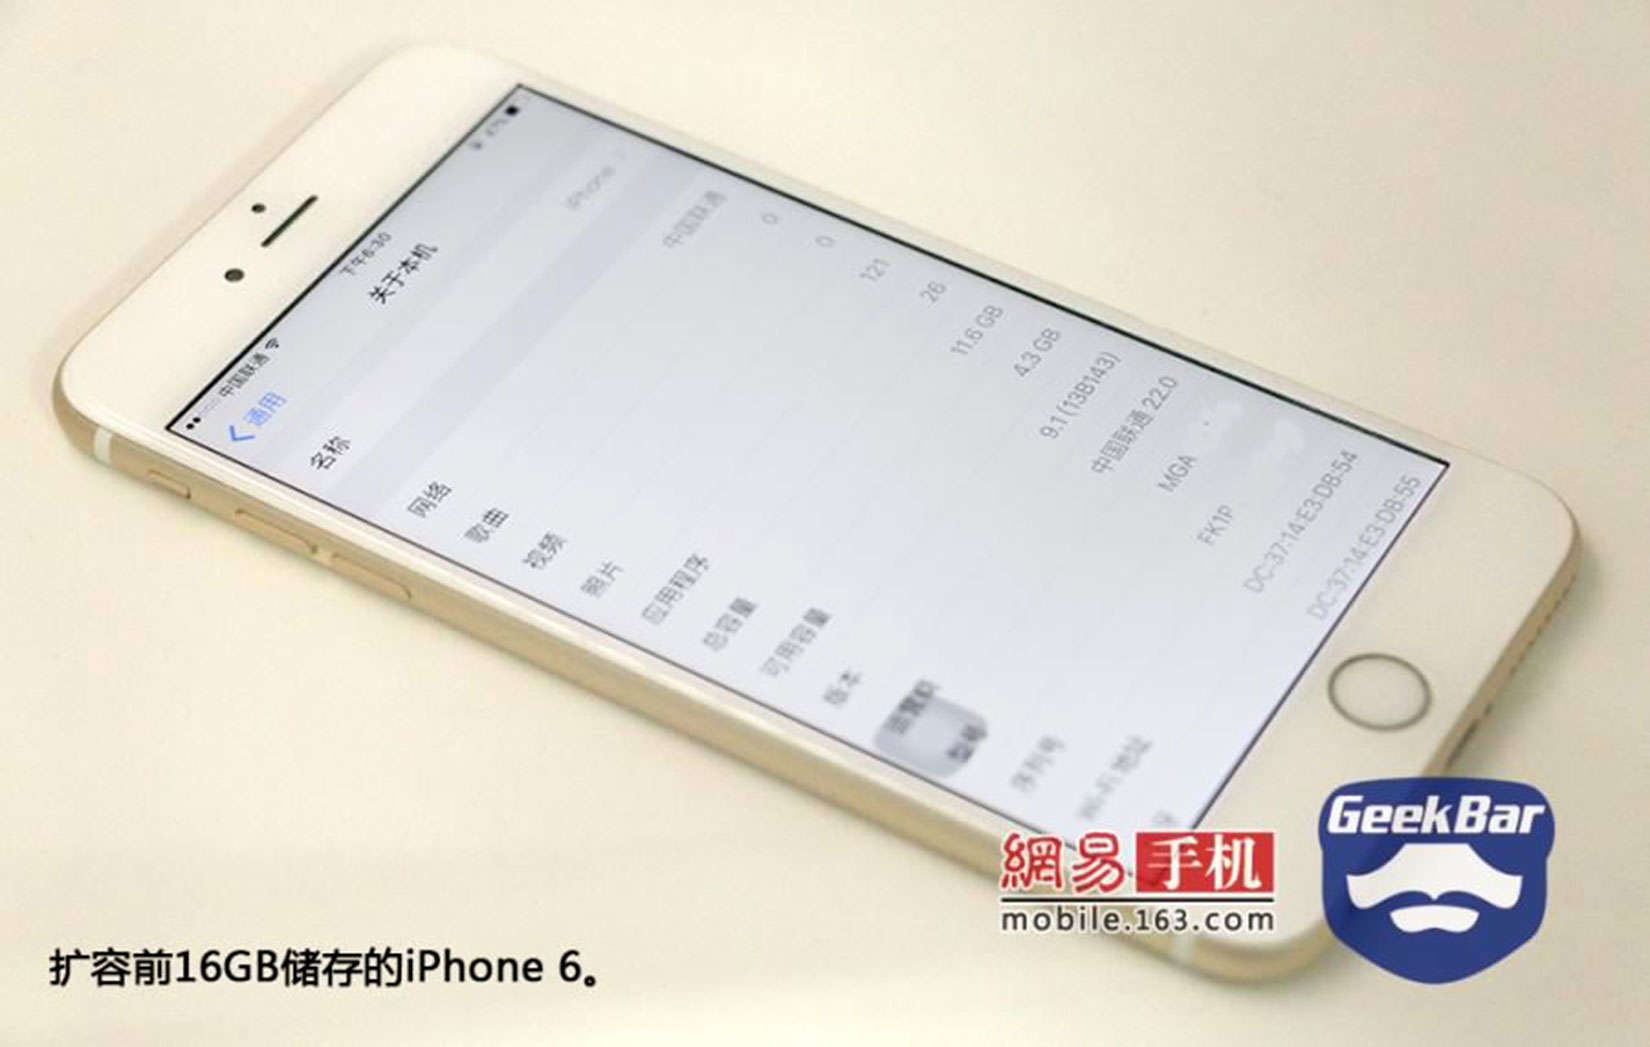 In China, a 16GB iPhone 6 can be upgraded to 128GB for $100 or less.